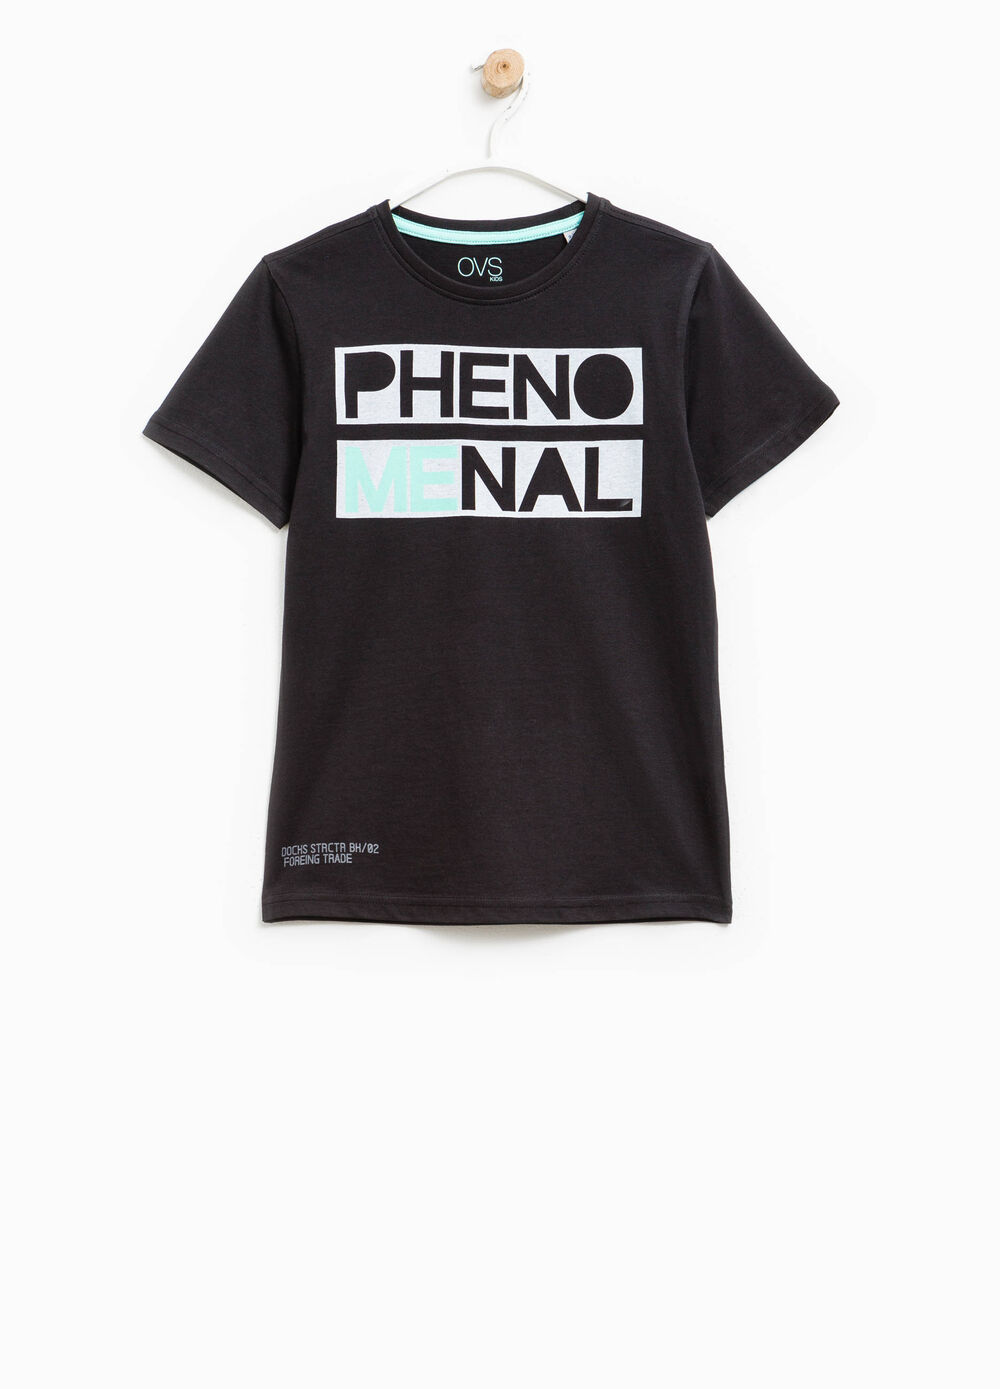 T-shirt in cotone con stampa lettering